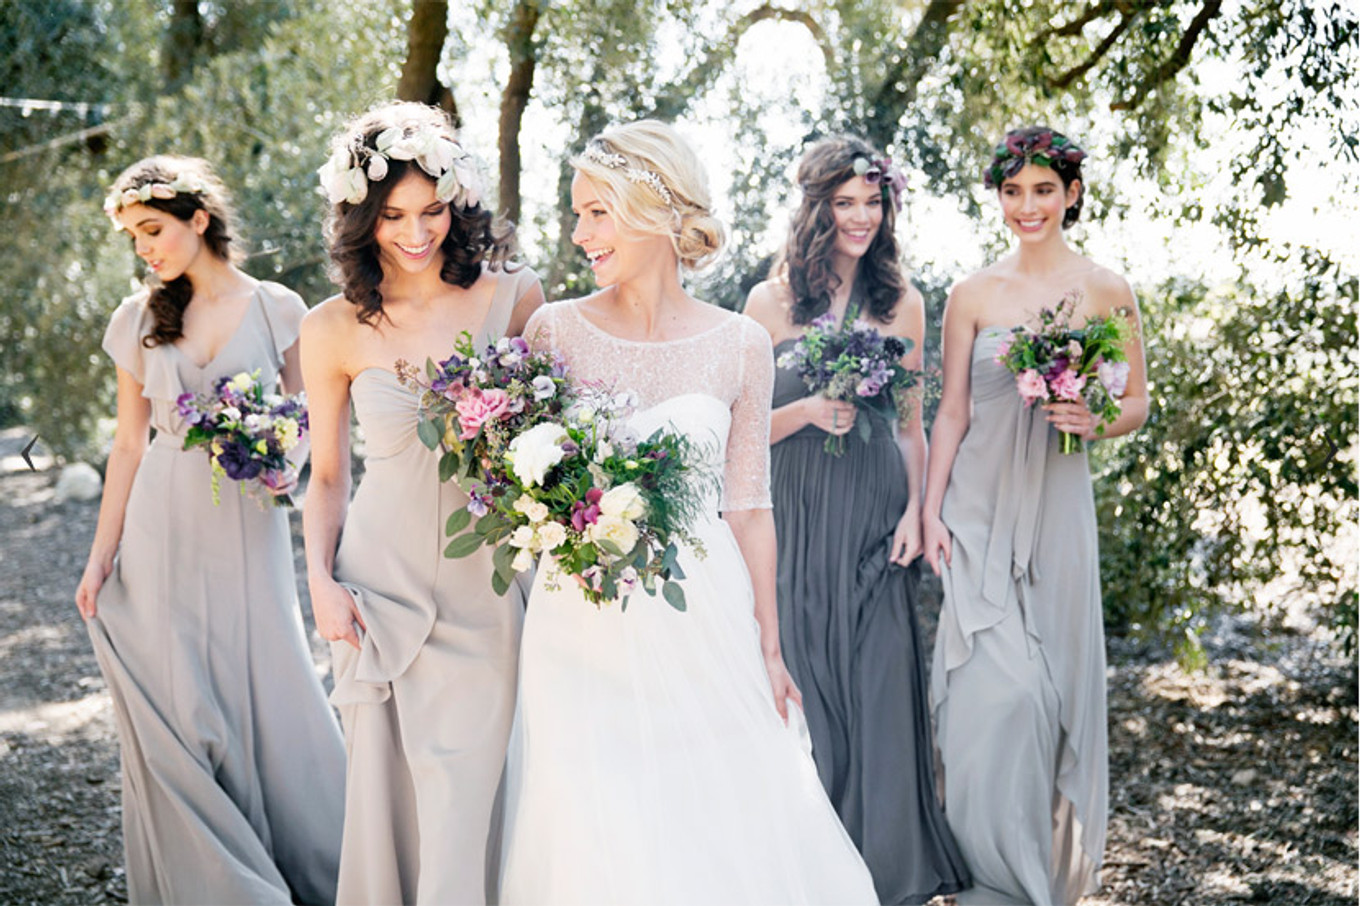 3 Tips for Choosing Your Bridesmaid